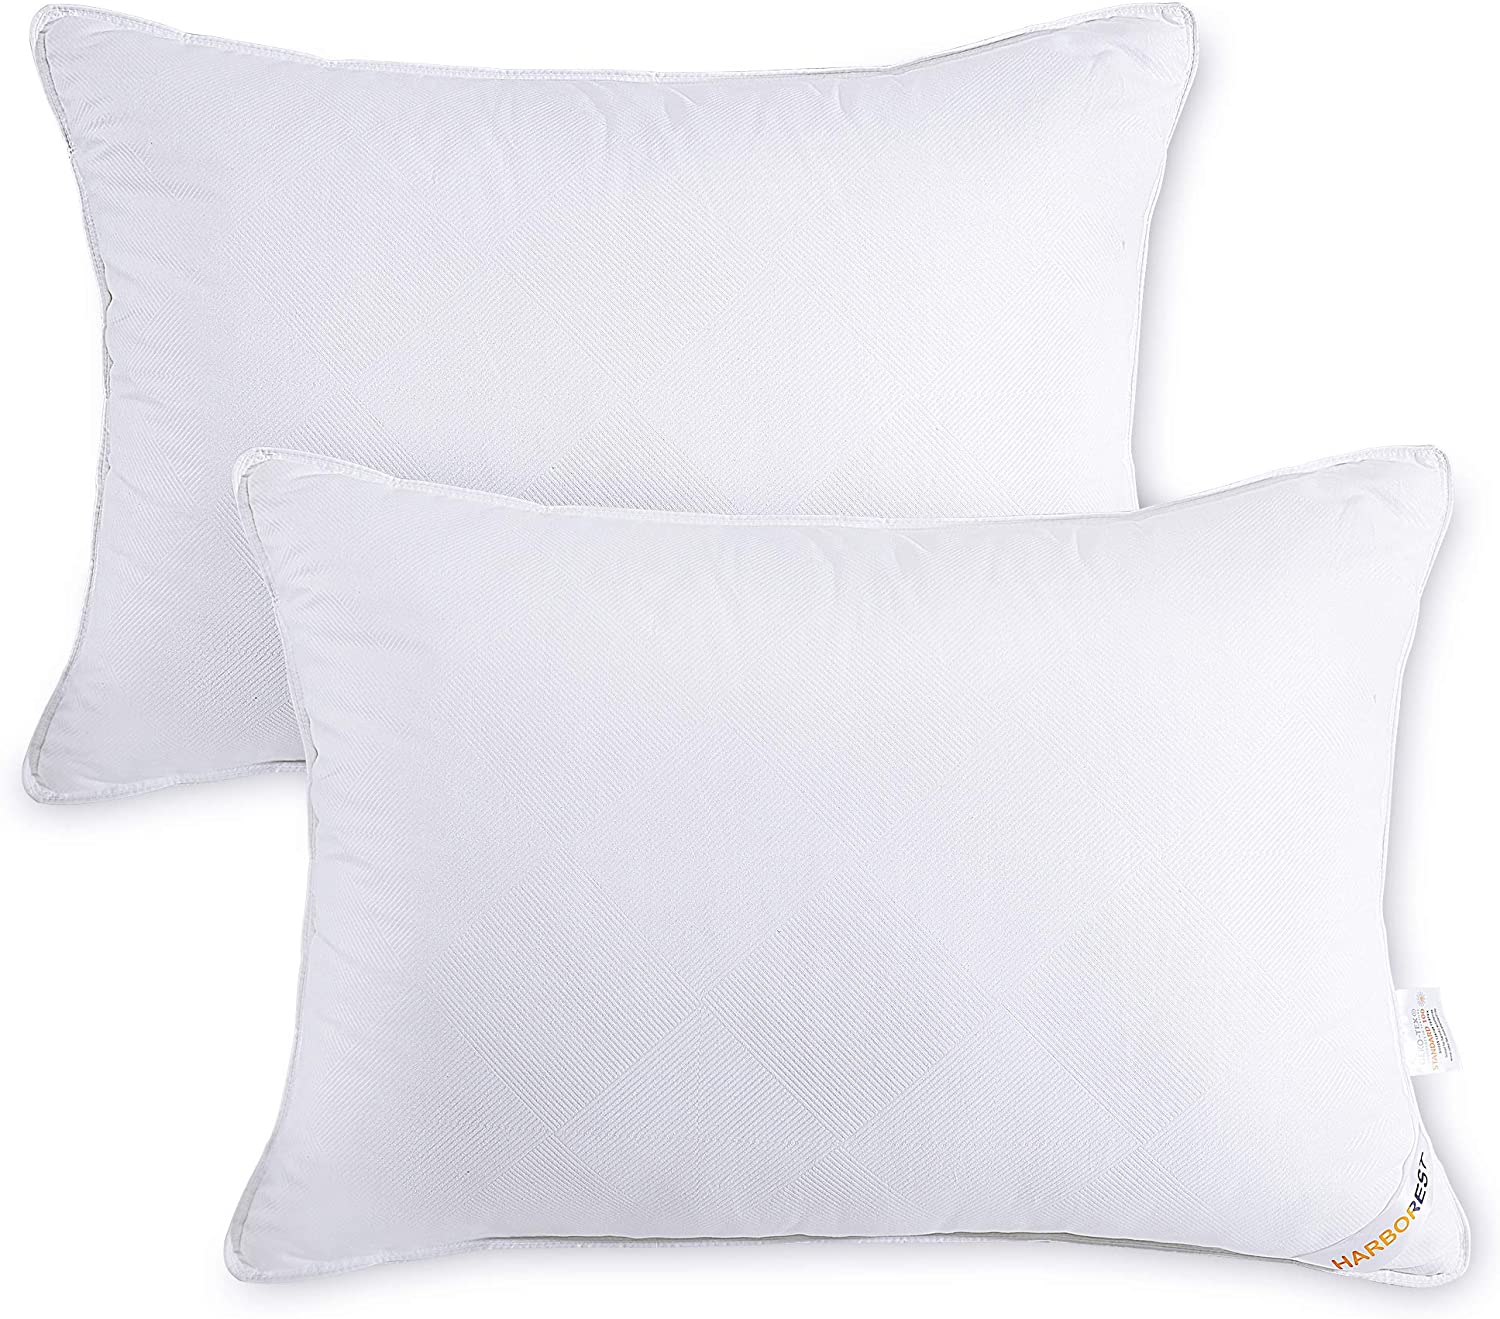 HARBOREST Bed Pillows for Sleeping (2 Pack) - Luxury Plush Down Alternative Pillows Good for Side and Back Sleeper Hotel Pillows, Standard/Queen 20 x 26 Inches